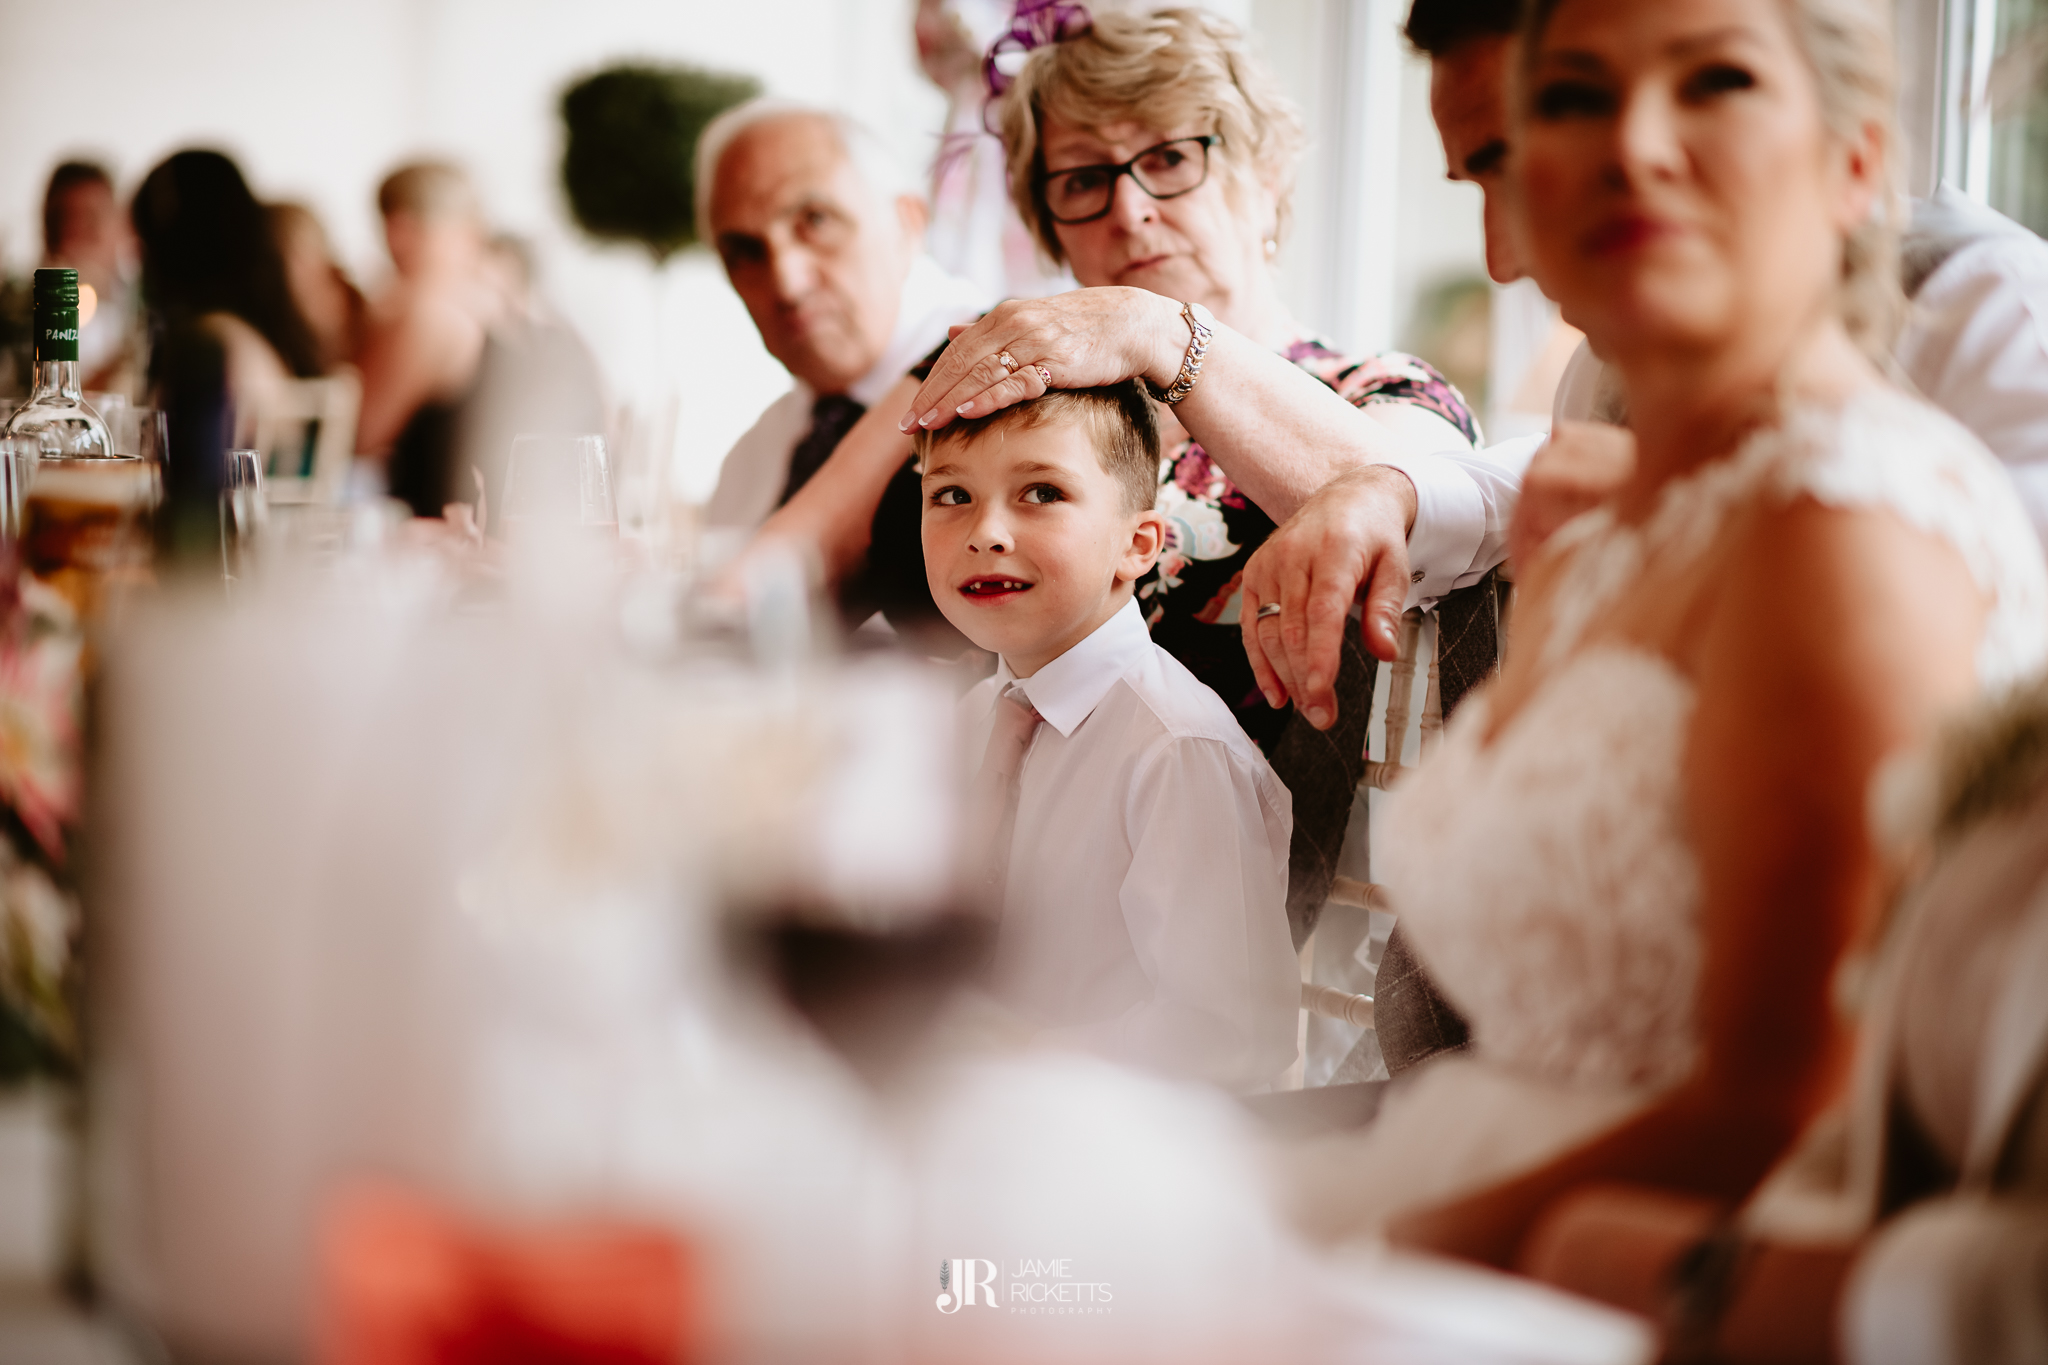 Wroxeter-Hotel-Wedding-Photography-In-Shropshire-By-Shropshire-Wedding-Photographer-Jamie-Ricketts-153.JPG